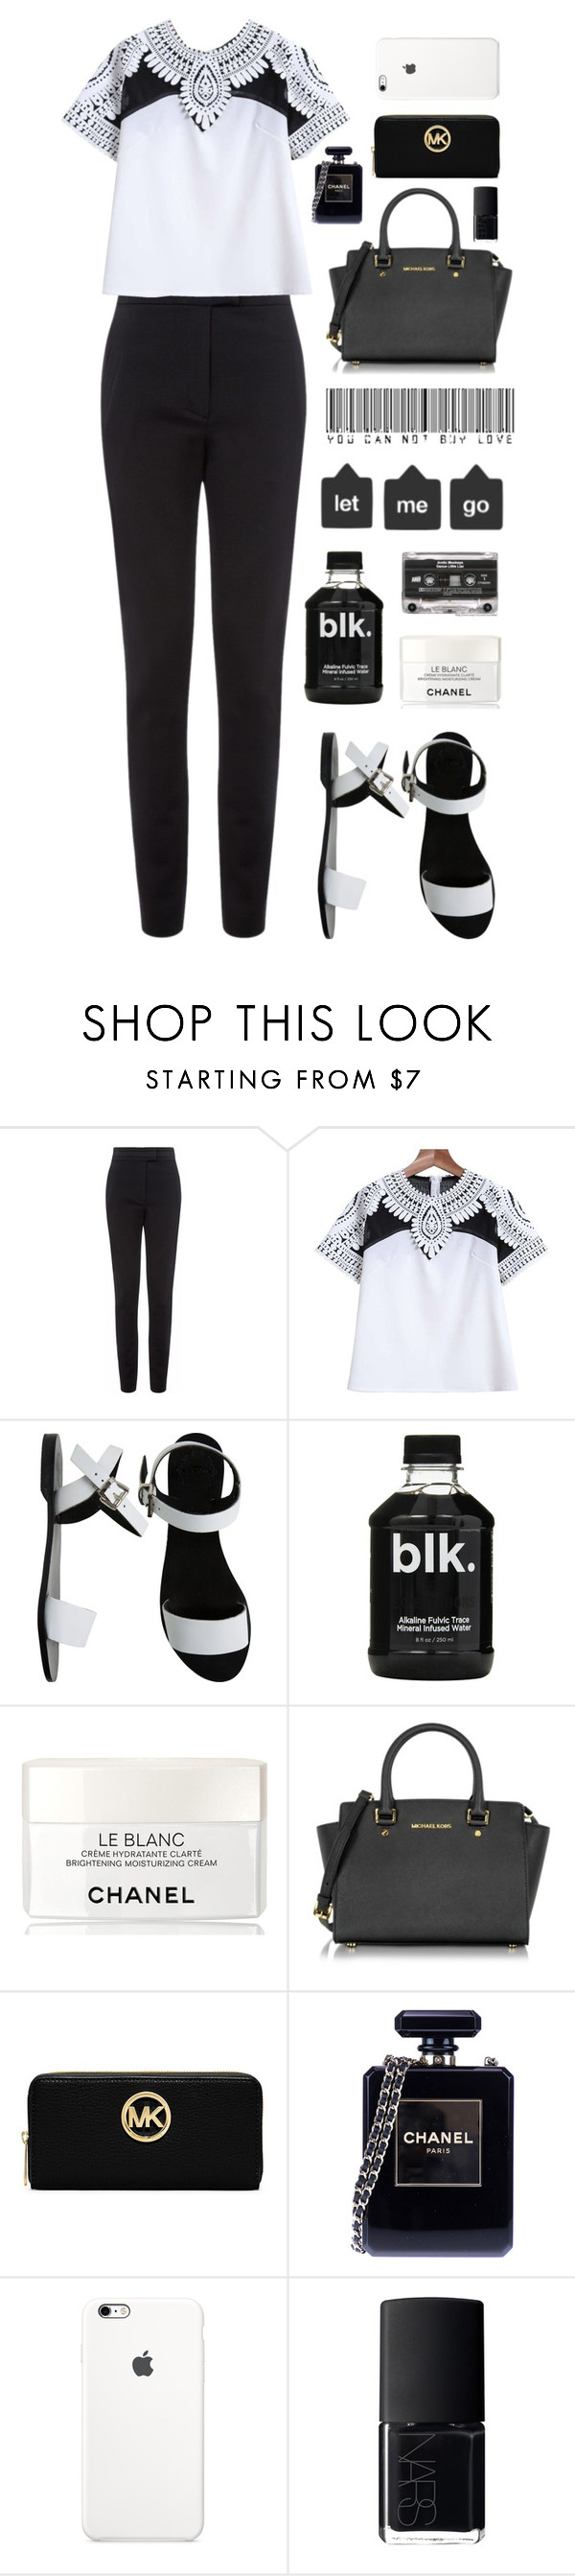 """""""work"""" by chanelniall ❤ liked on Polyvore featuring Vielma London, Sol Sana, Chanel, Michael Kors, MICHAEL Michael Kors and NARS Cosmetics"""